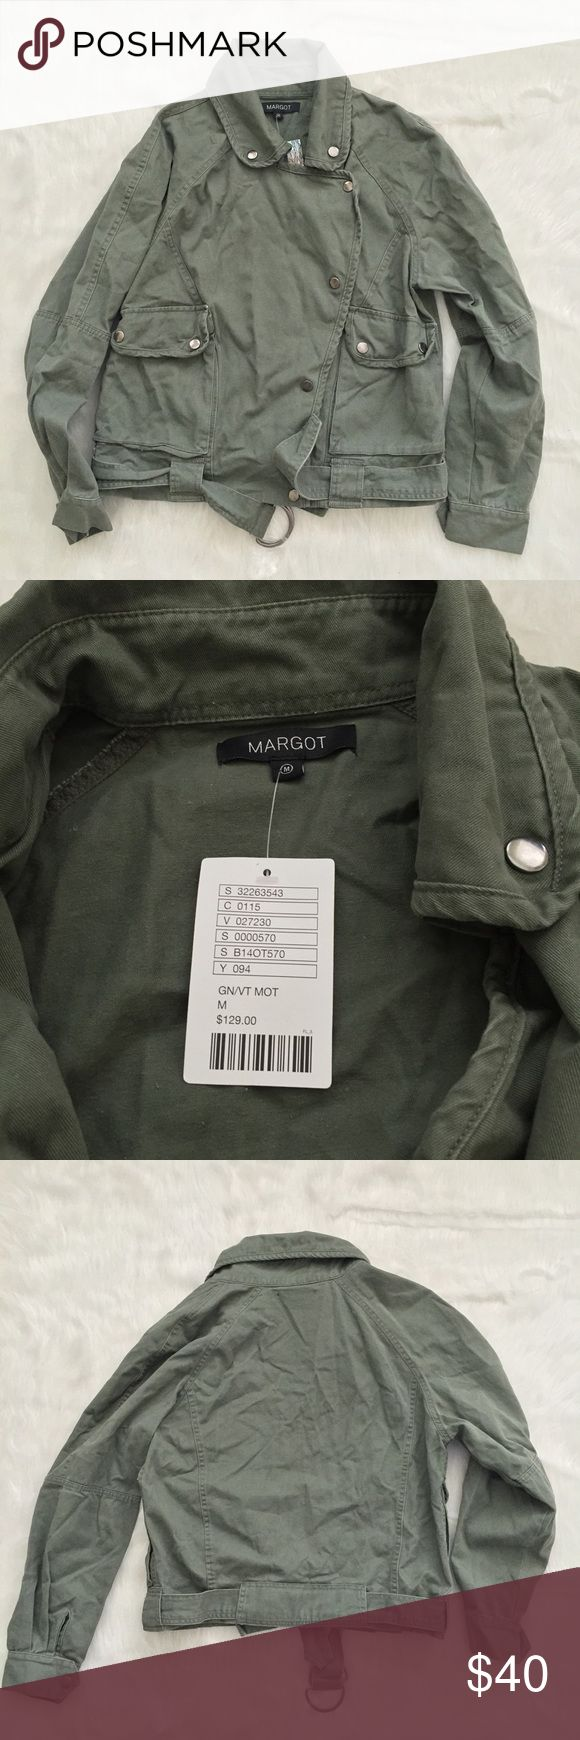 Urban Outfitters Margot Green Utility Jacket 🌟🌟Thank you for stopping by! If you have any questions, just ask! Make offers don't be shy, and please stop by again!🌟🌟 Gently pre-owned condition. No piling, or stains. Very small needle hole on back, please see photos. Urban Outfitters Jackets & Coats Utility Jackets